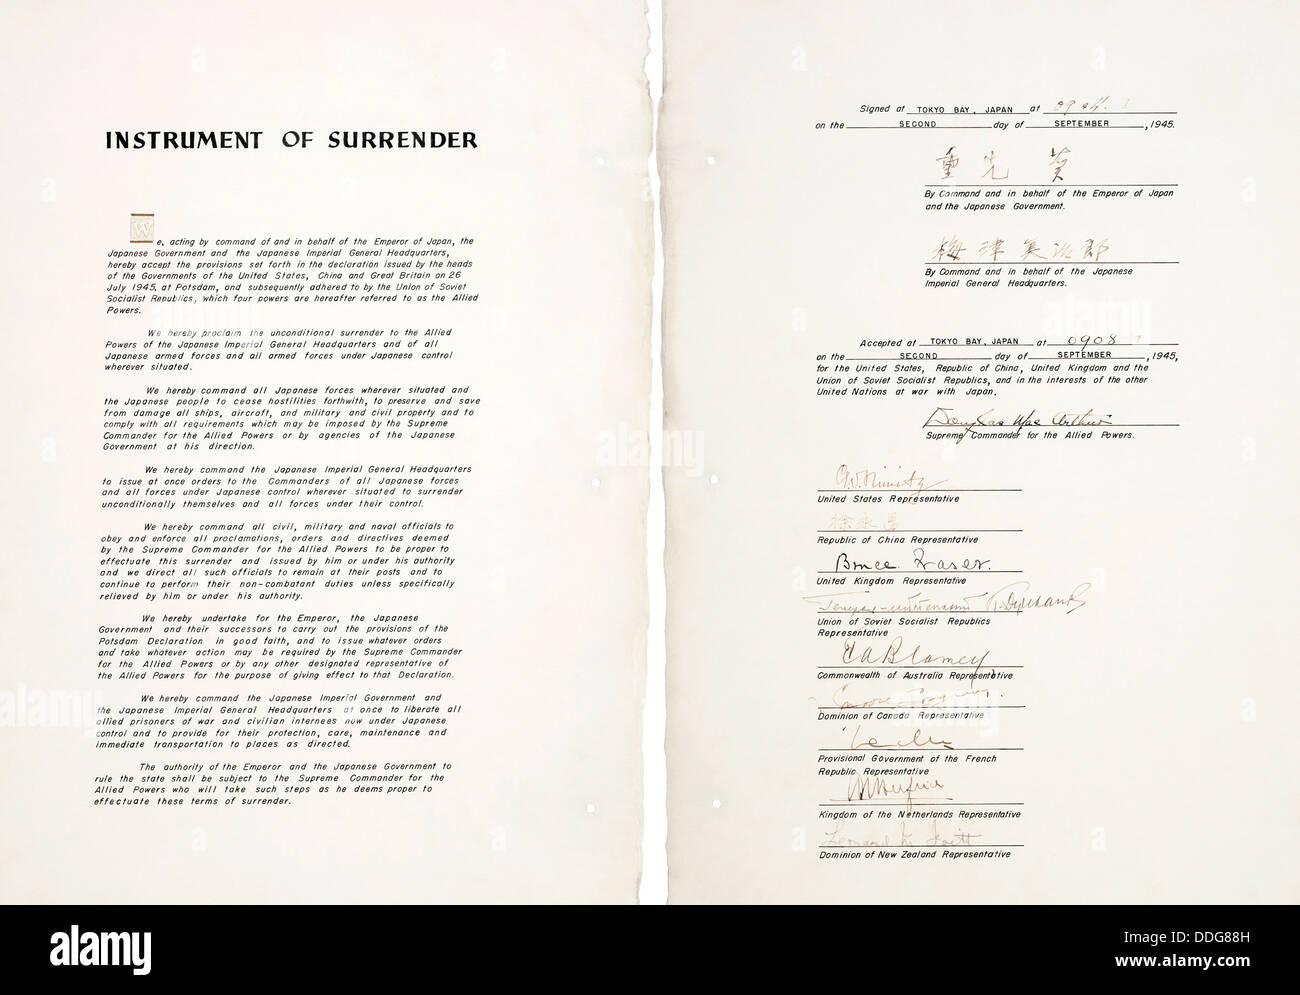 JAPAN INSTRUMENT OF SURRENDER document signed on USS Missouri in Tokyo Bay on 2 September 1945 - Stock Image